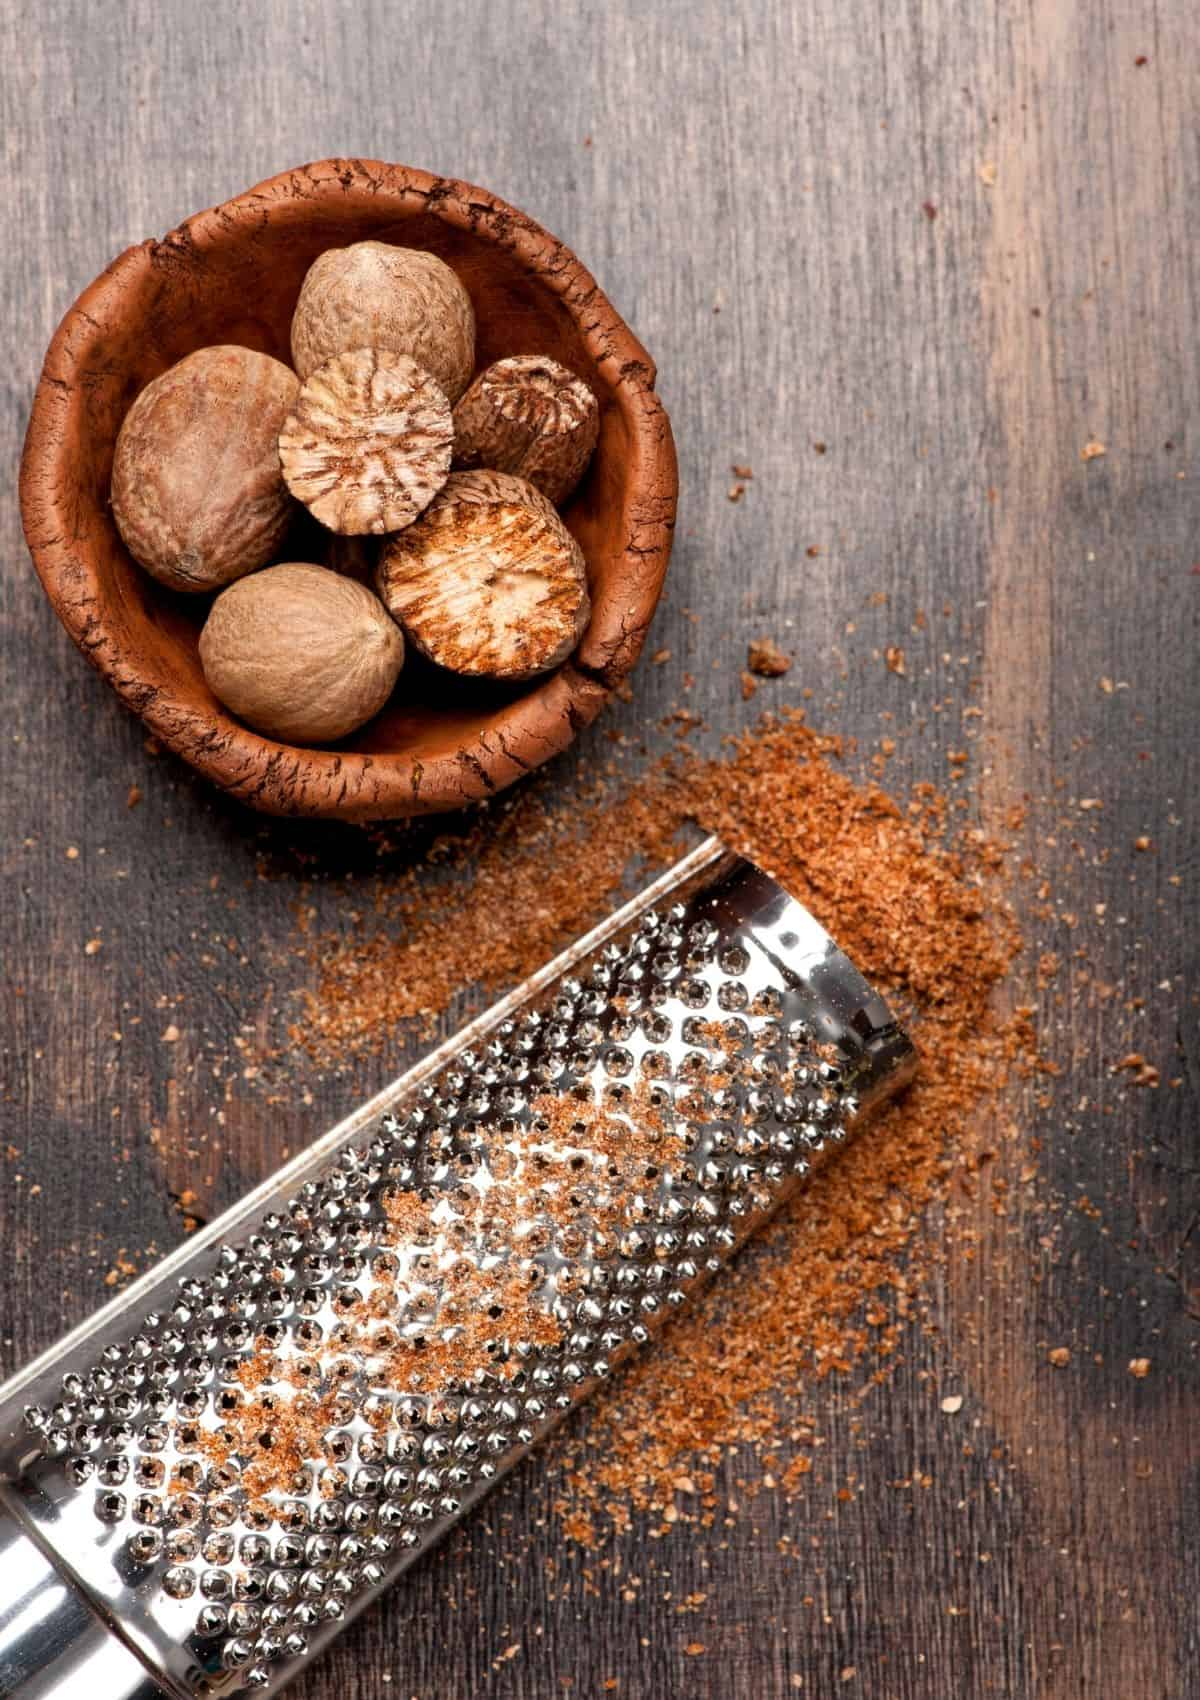 Nutmeg  in small wood bowl, beside ground nutmeg. - foods that start with n